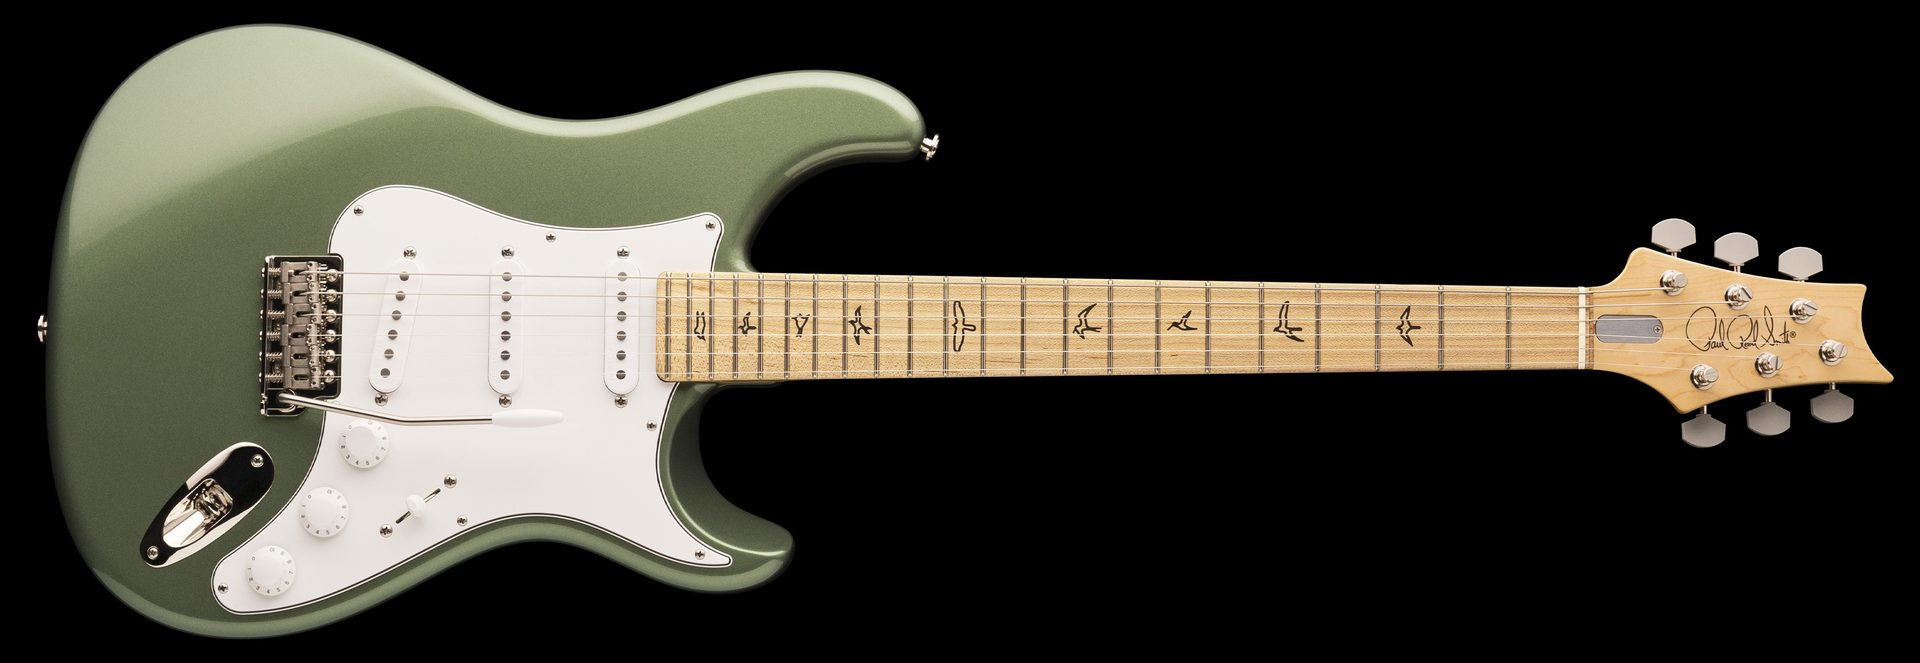 Orion Green (Maple)